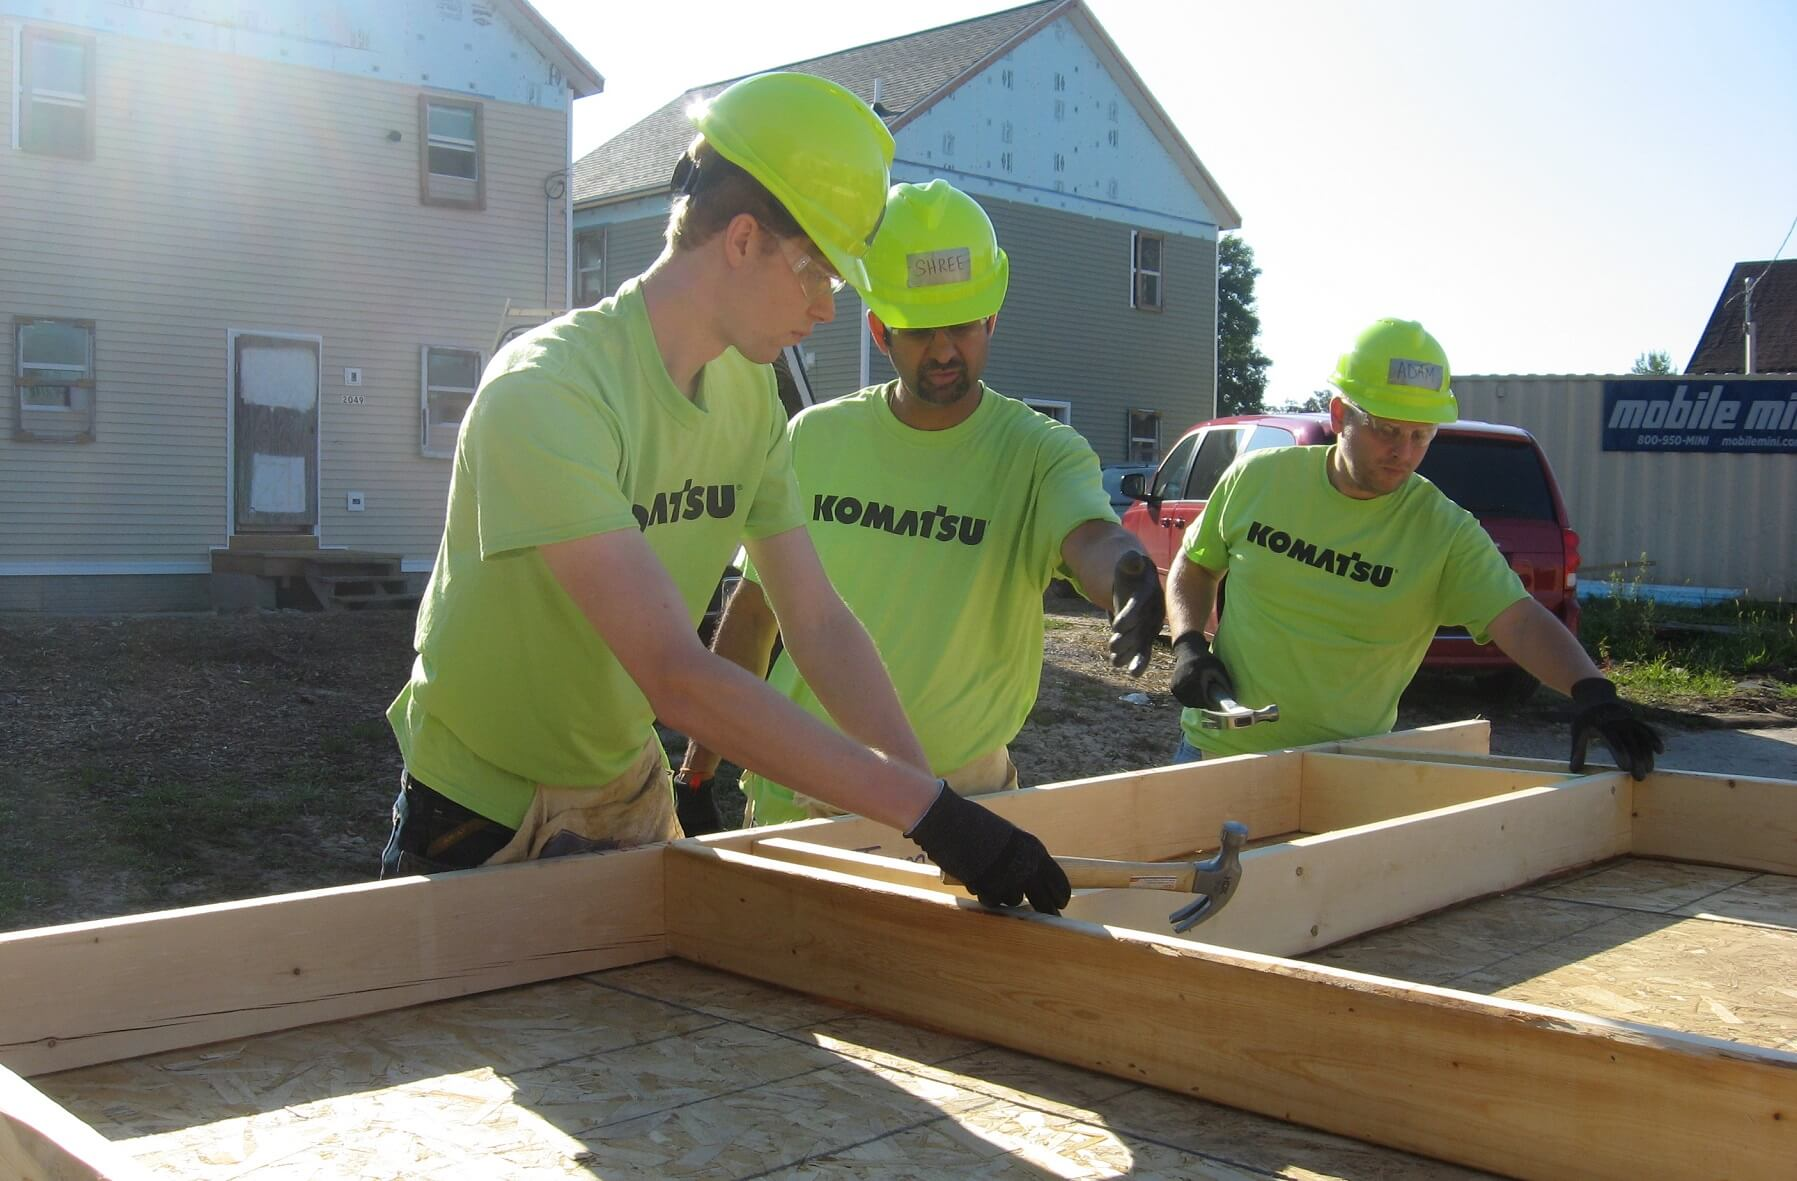 Komatsu Mining Corp. Employees Build Homes for Habitat for Humanity in Midtown Milwaukee